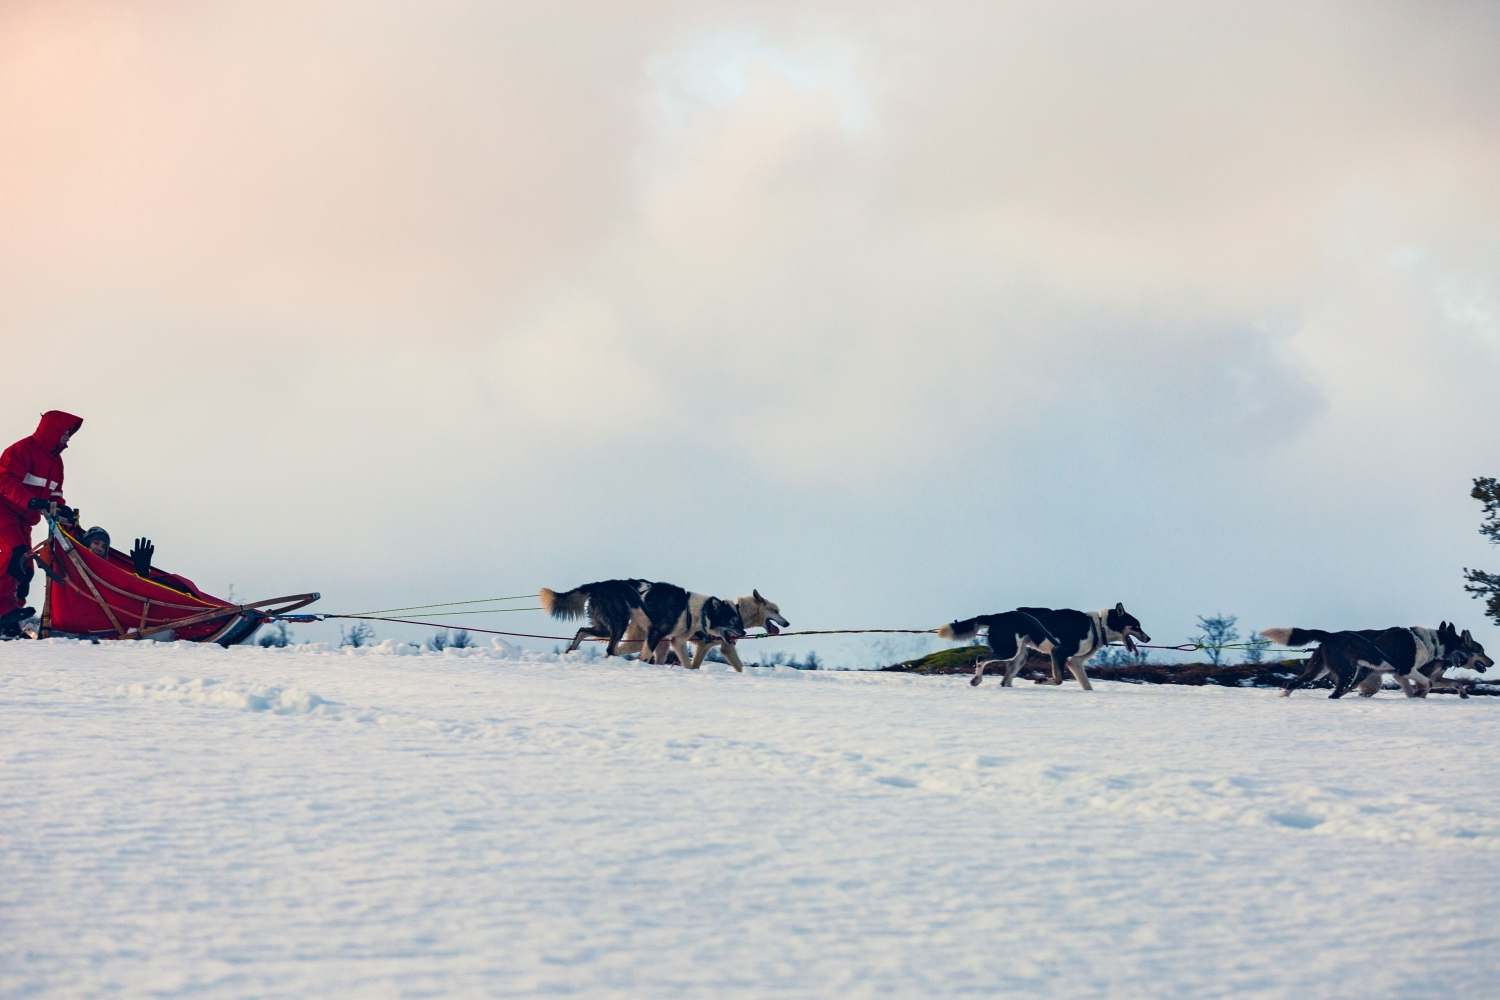 Dog sledding in winter landscape